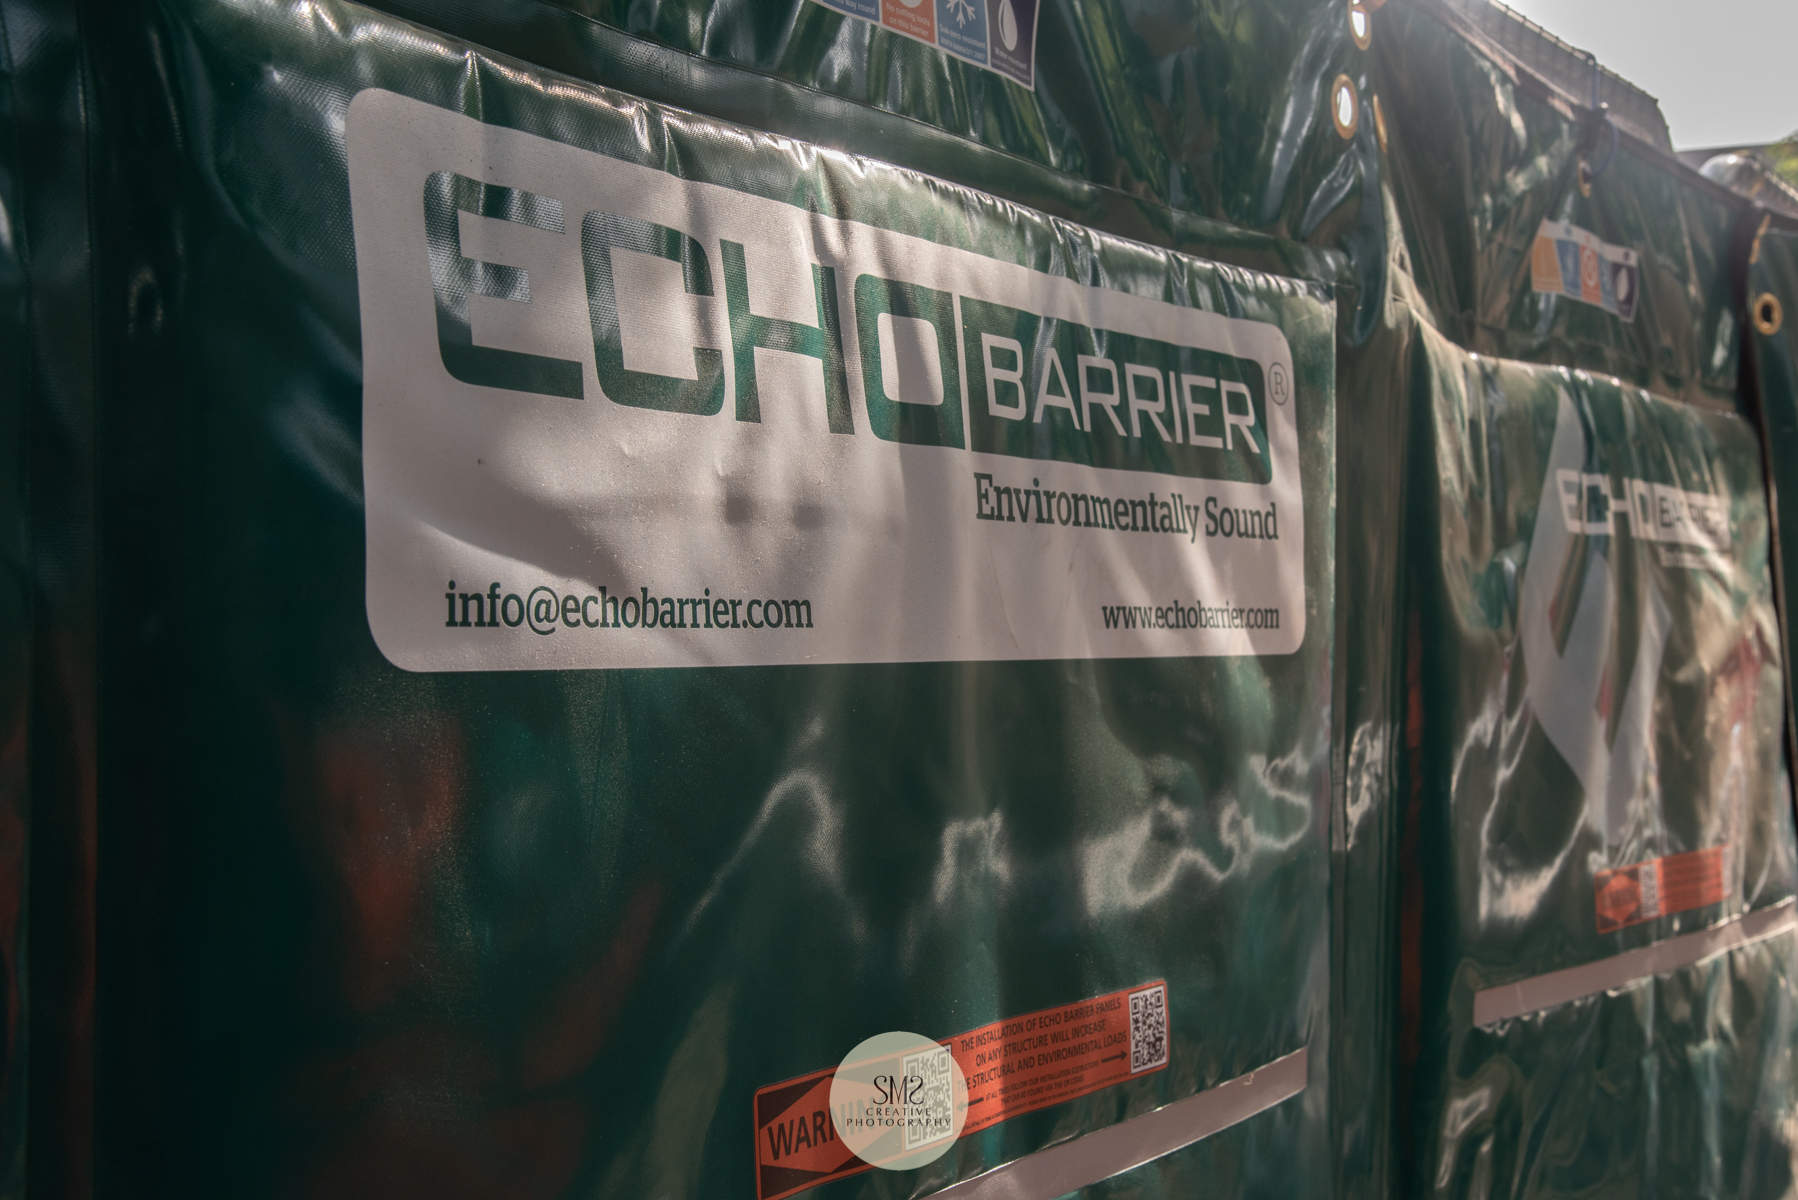 An 'echo barrier' to reduce the noise levels